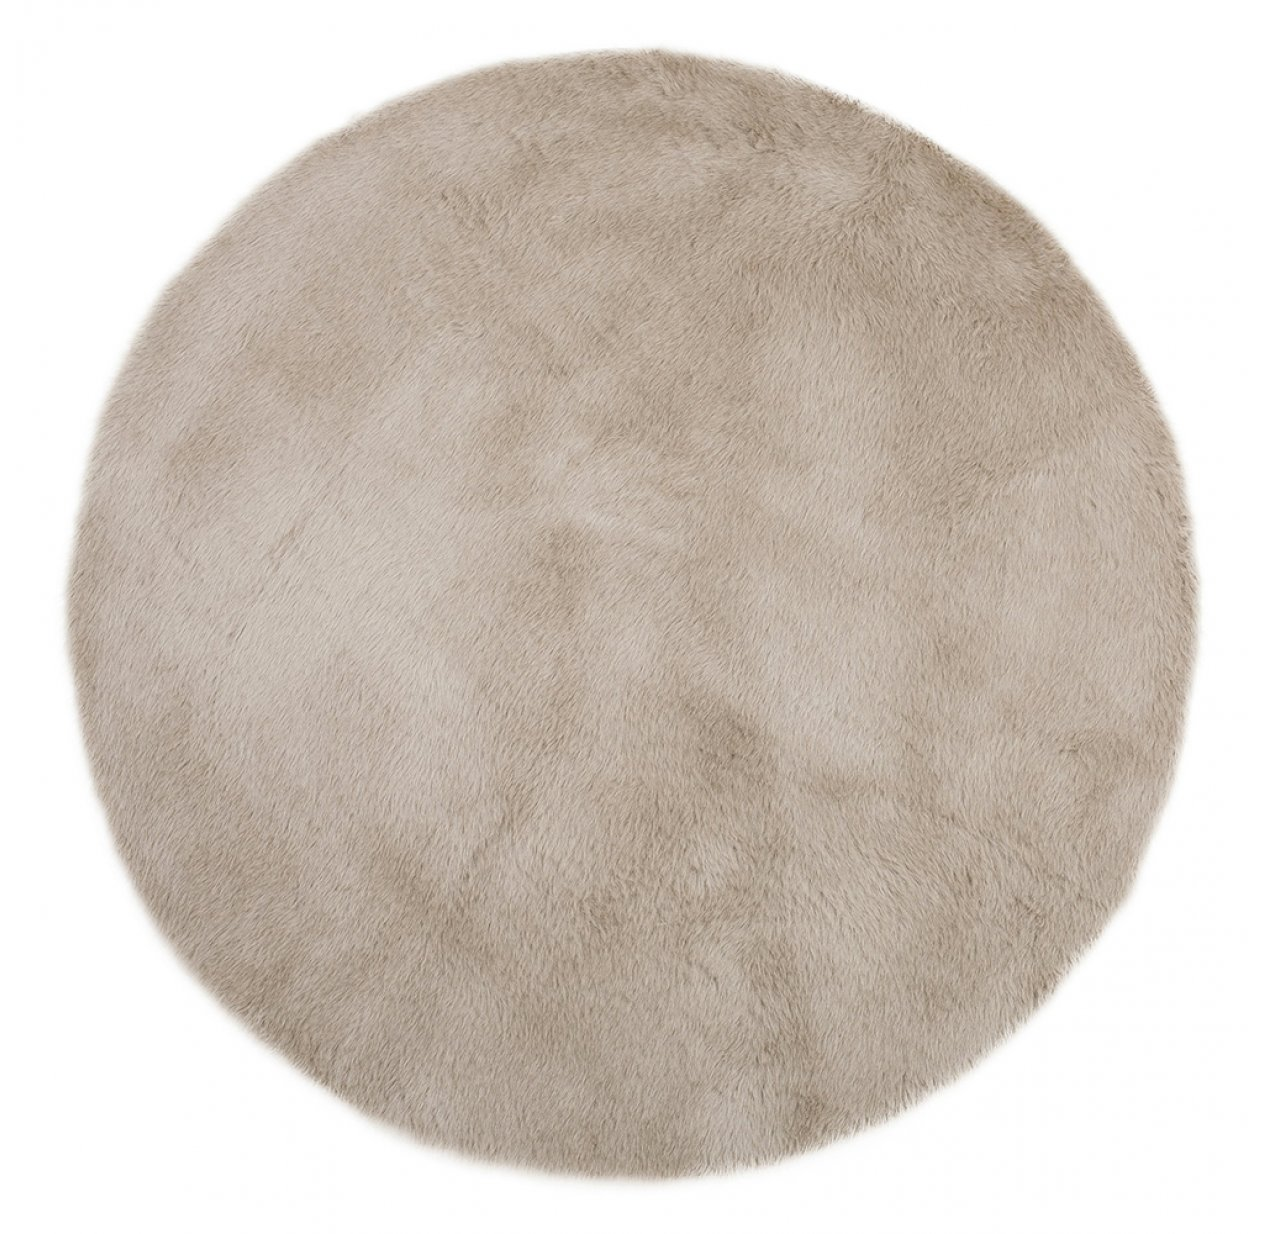 Tapis Rond - Gris taupe